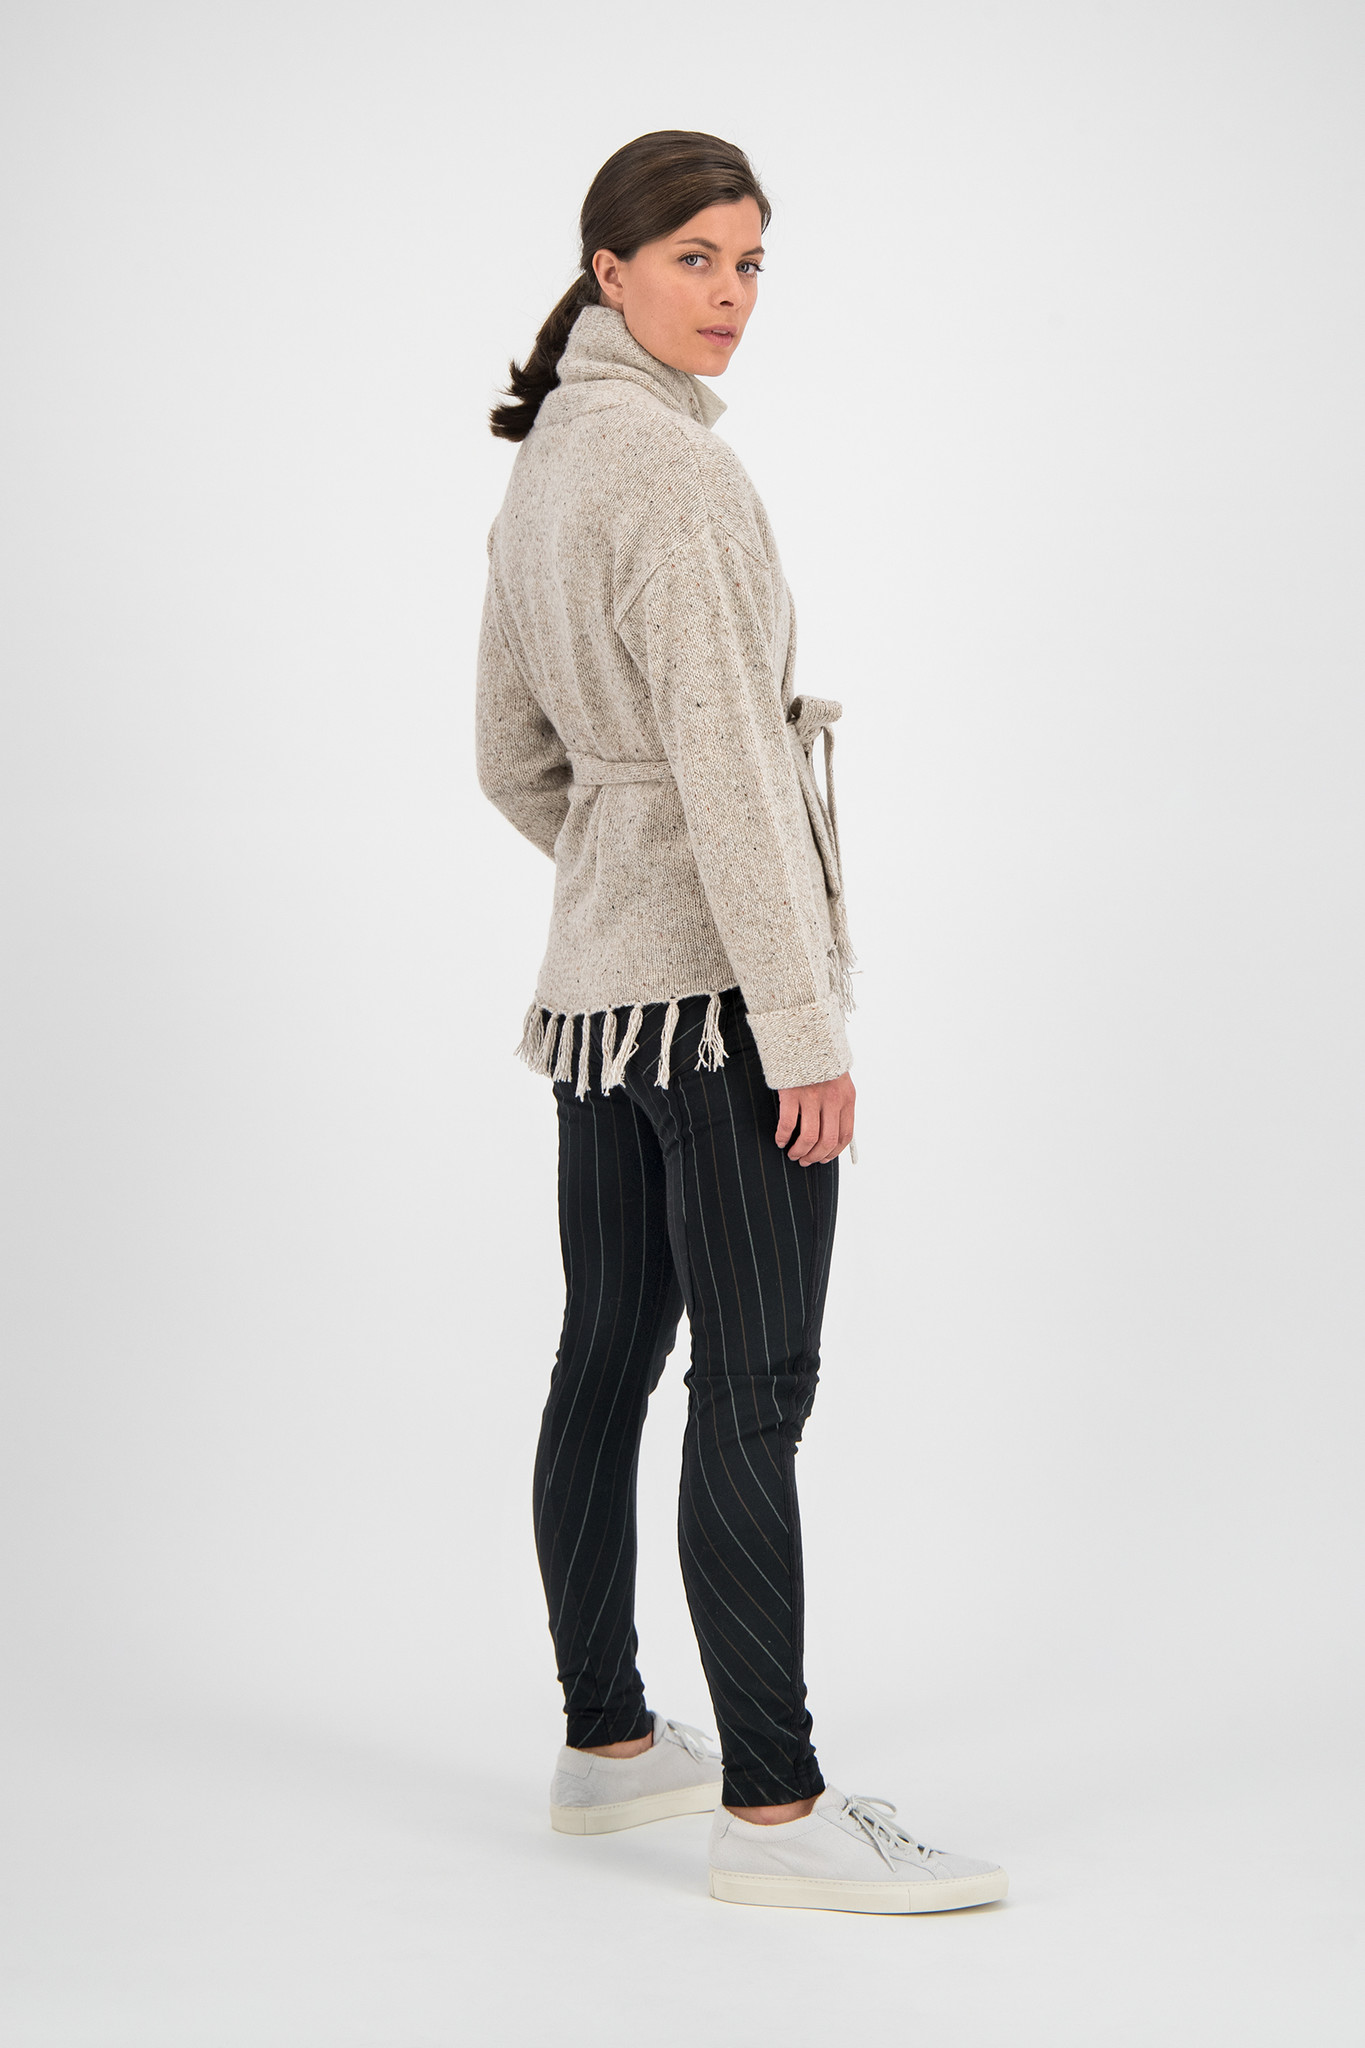 SYLVER Colour Twist Cardigan - Oatmeal